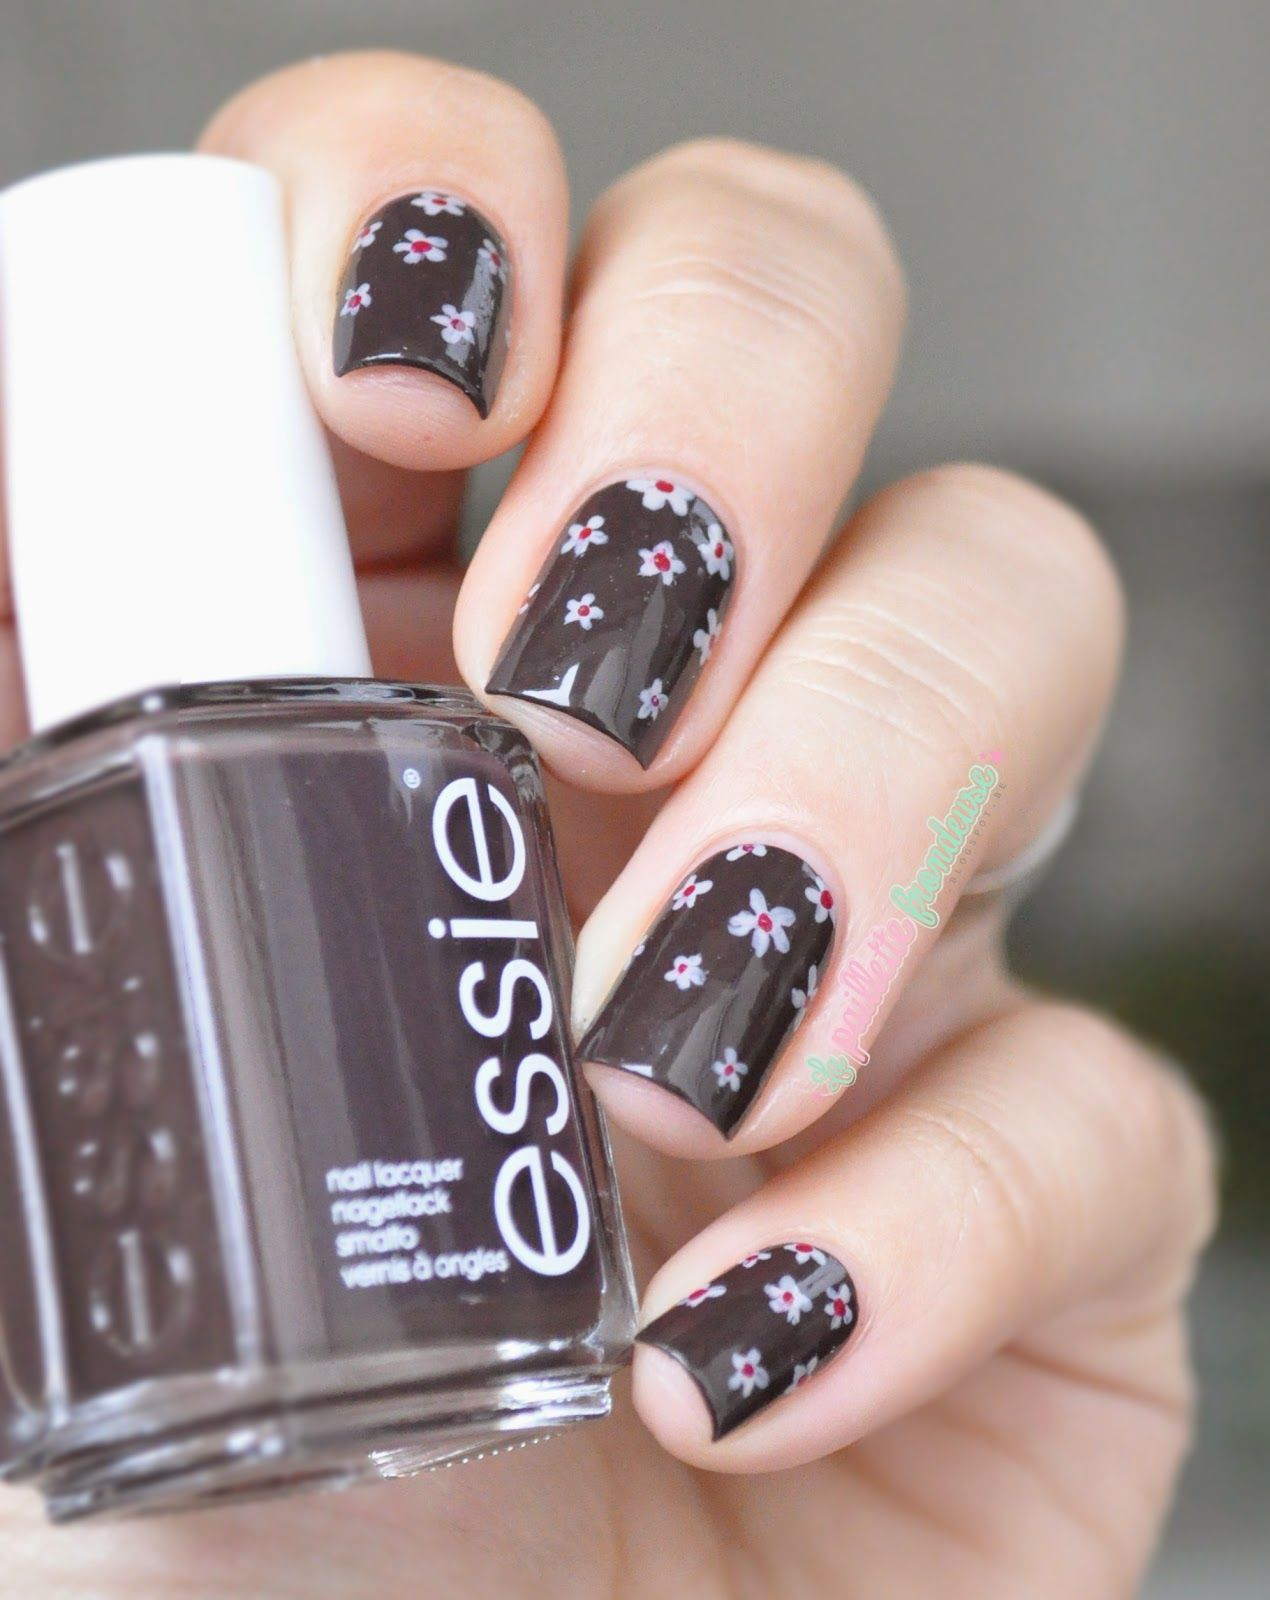 Essie Partner in crime // Miracle, un marron qui me plait ...